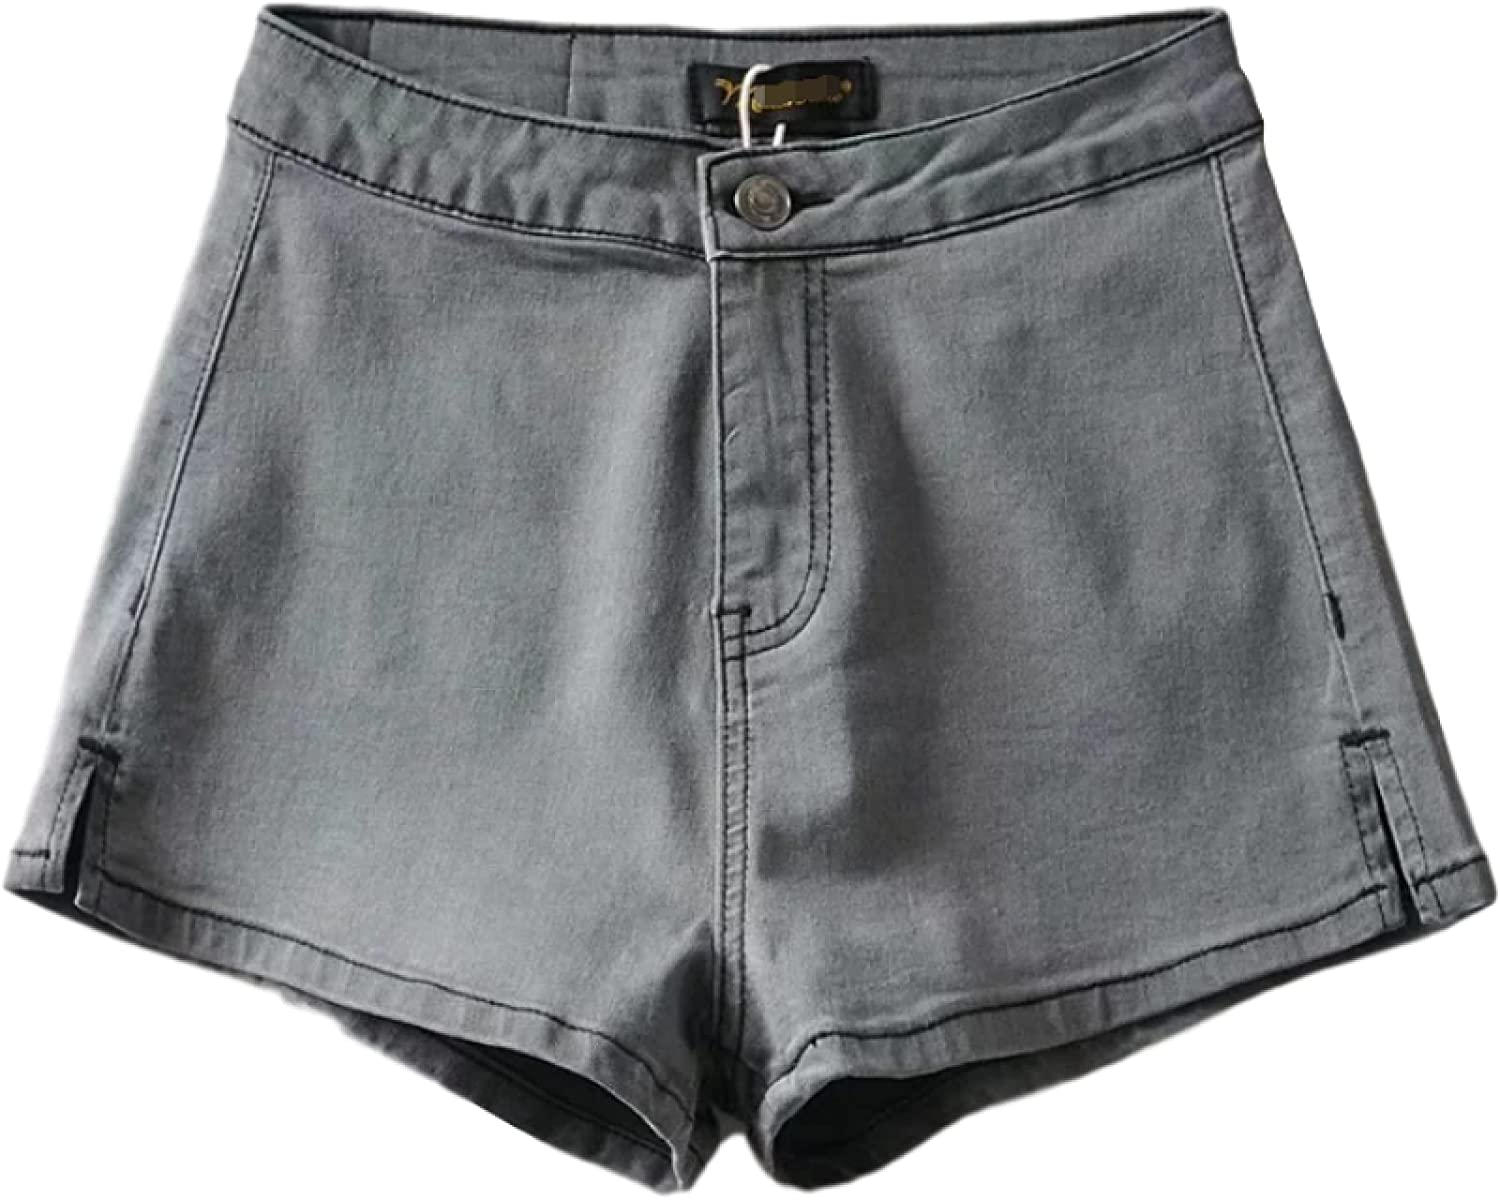 Women's Denim Shorts Fashion High Max 87% OFF Lifting Butt Sexy Super beauty product restock quality top Waist Tight